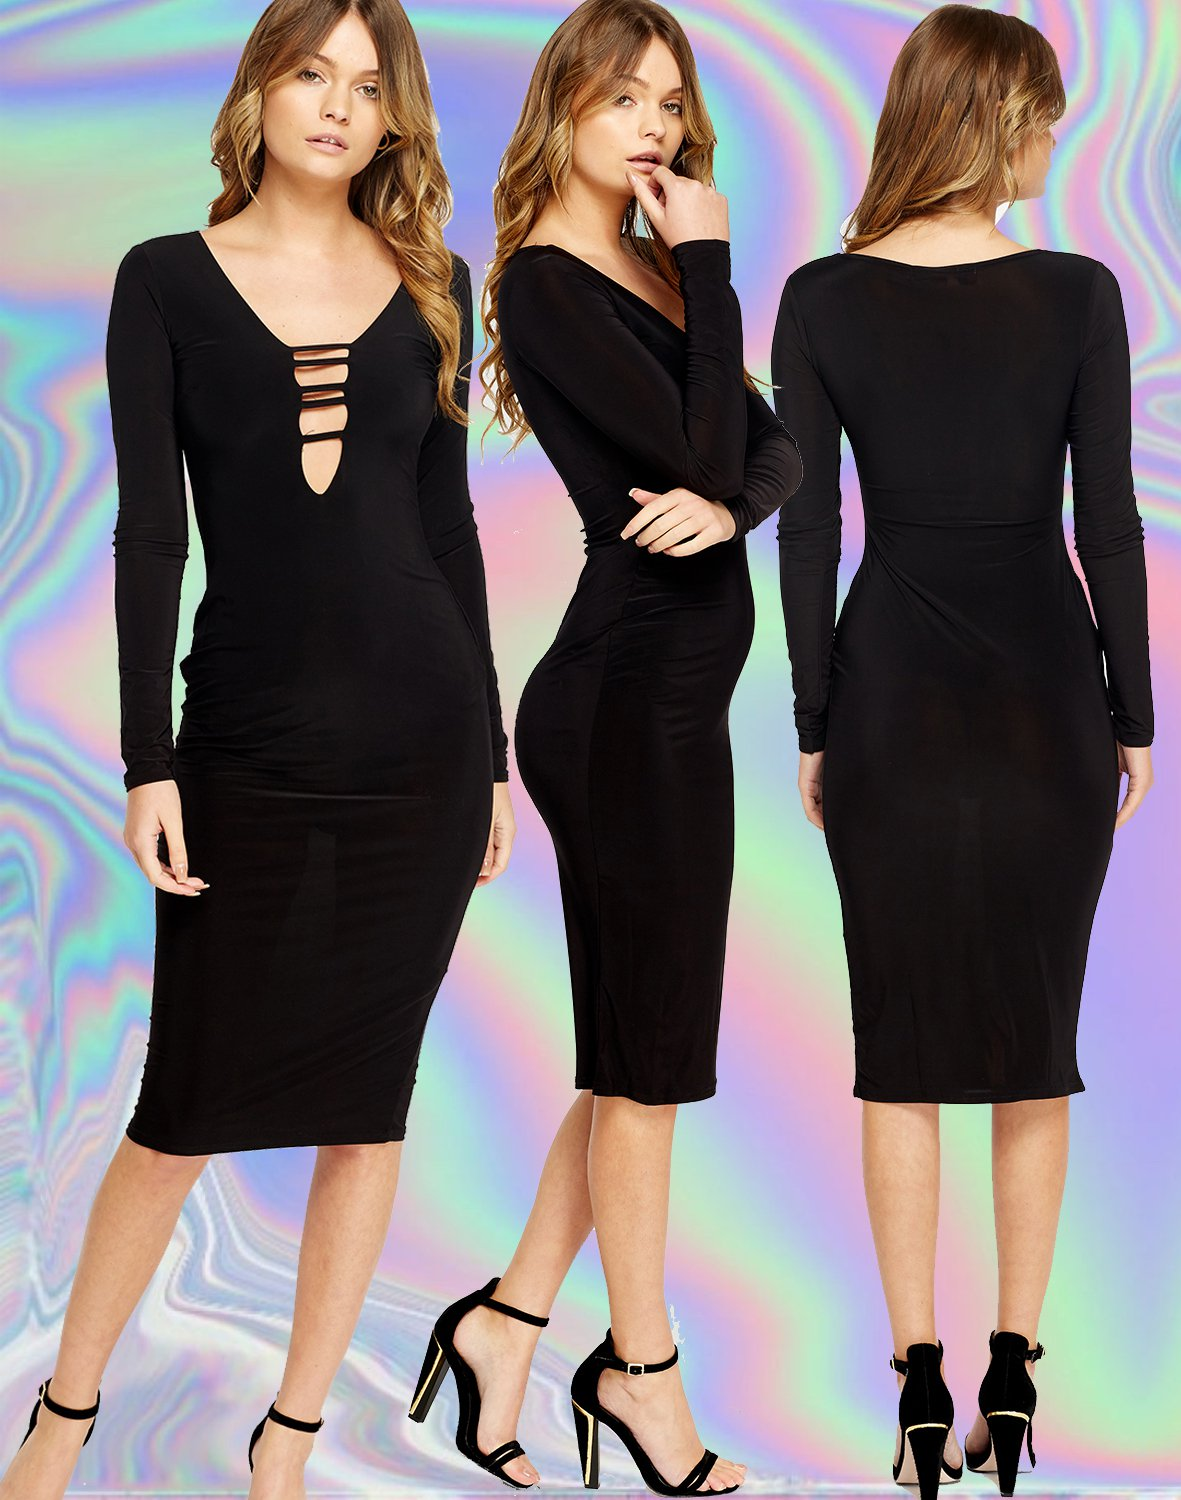 Bodycon Black Long Sleeve Plunge Dress Size Medium UK 8-10 � FREE Worldwide Shipping �